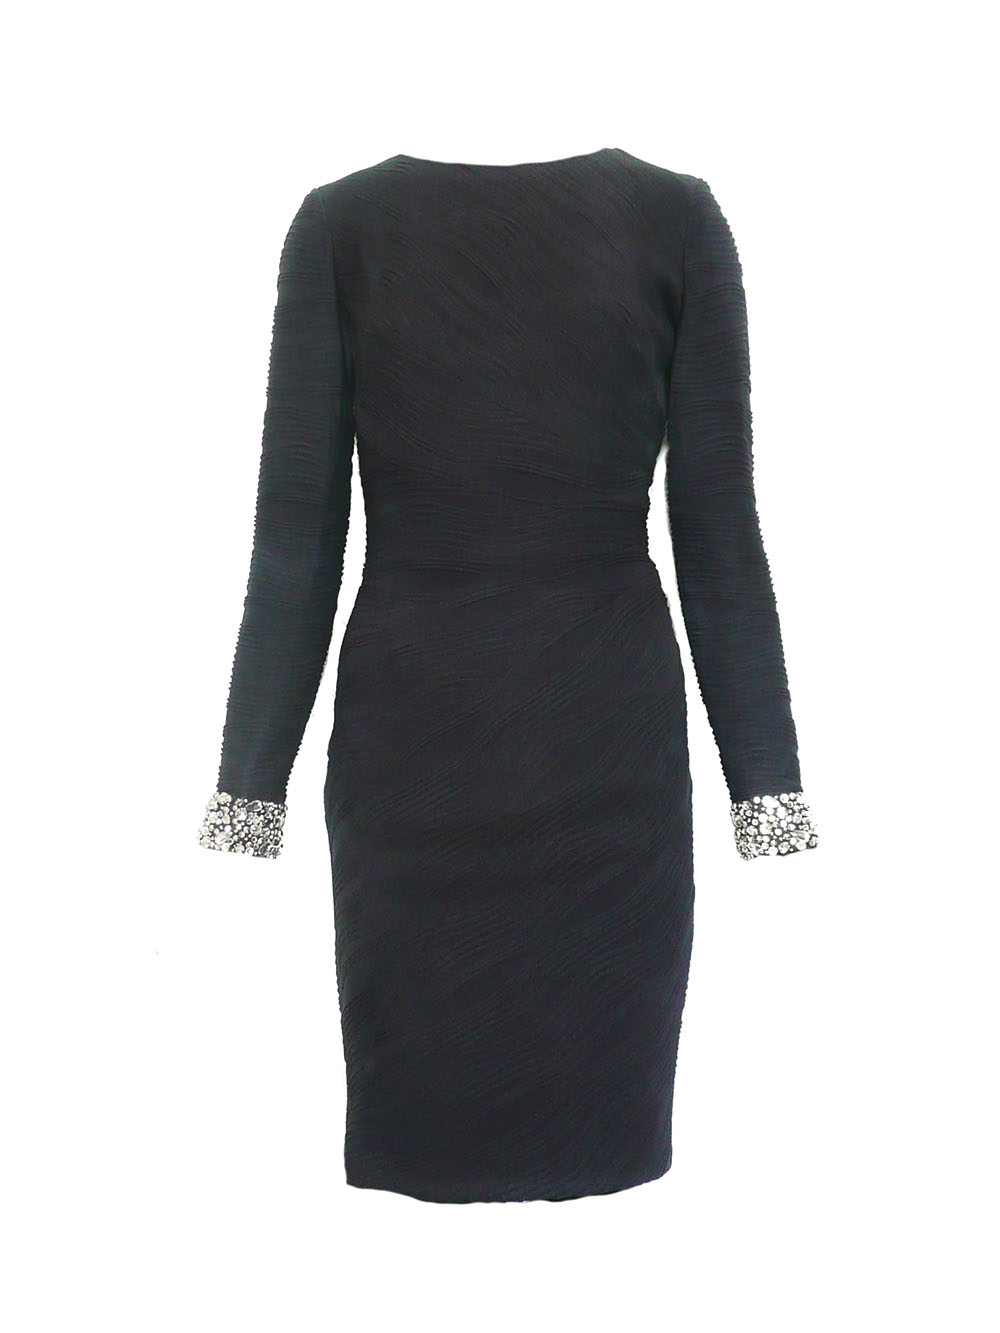 dress navy crinkle rhinstone cuff.jpg